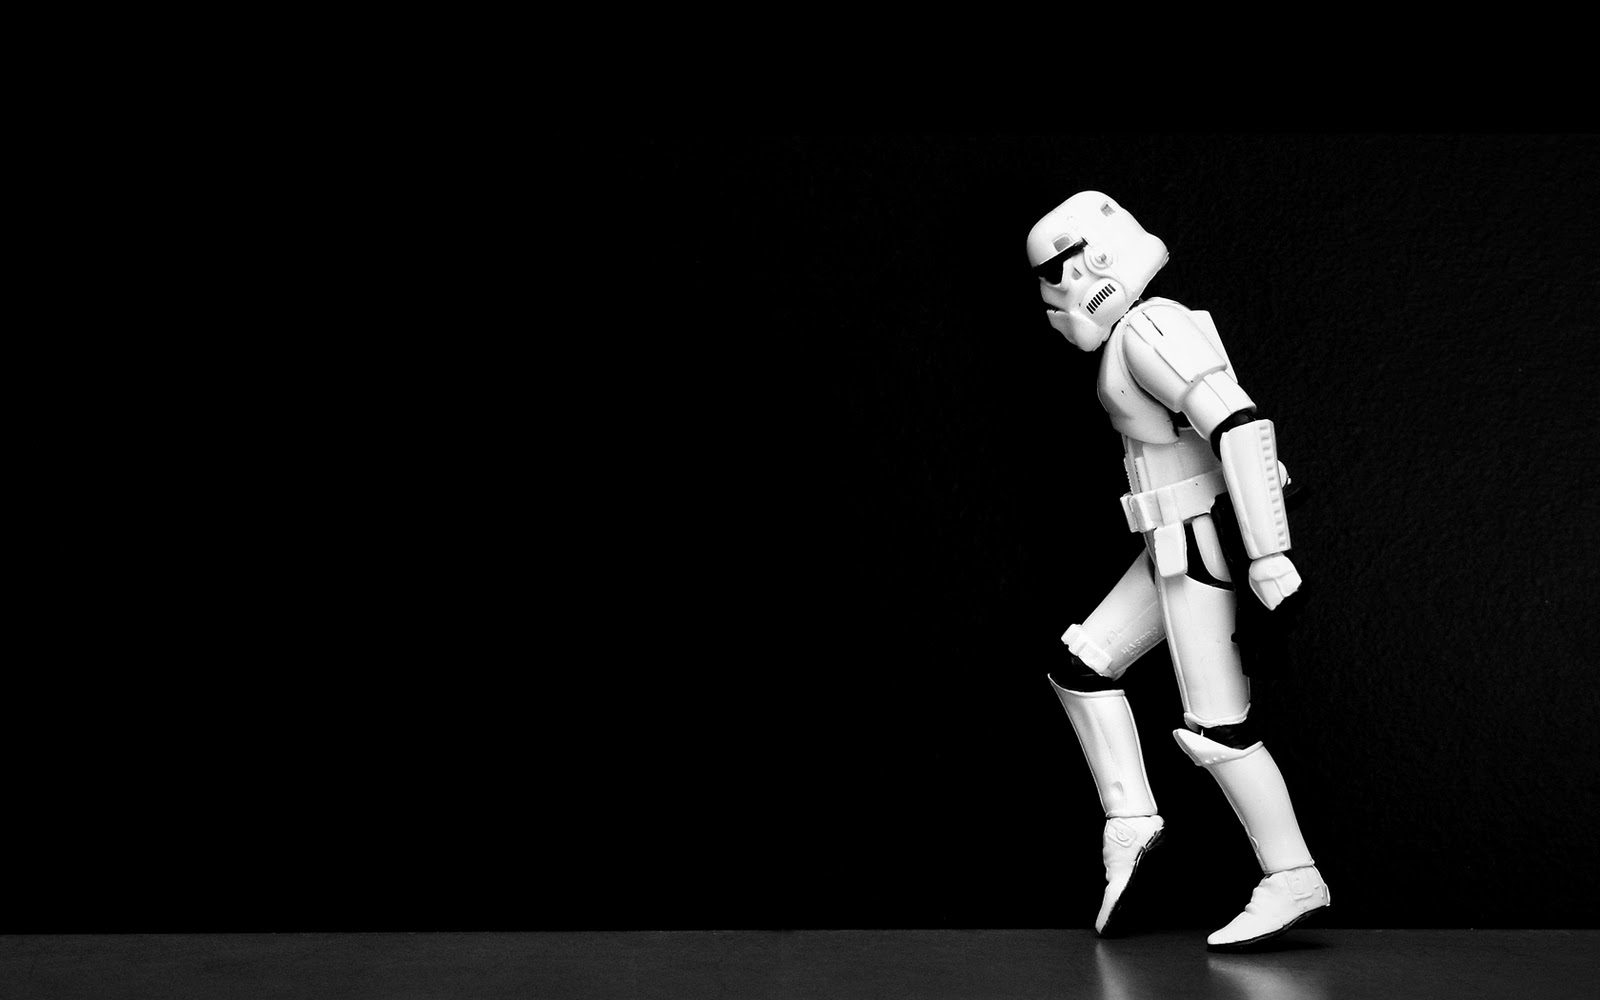 stormtrooper wallpaper star wars - photo #19